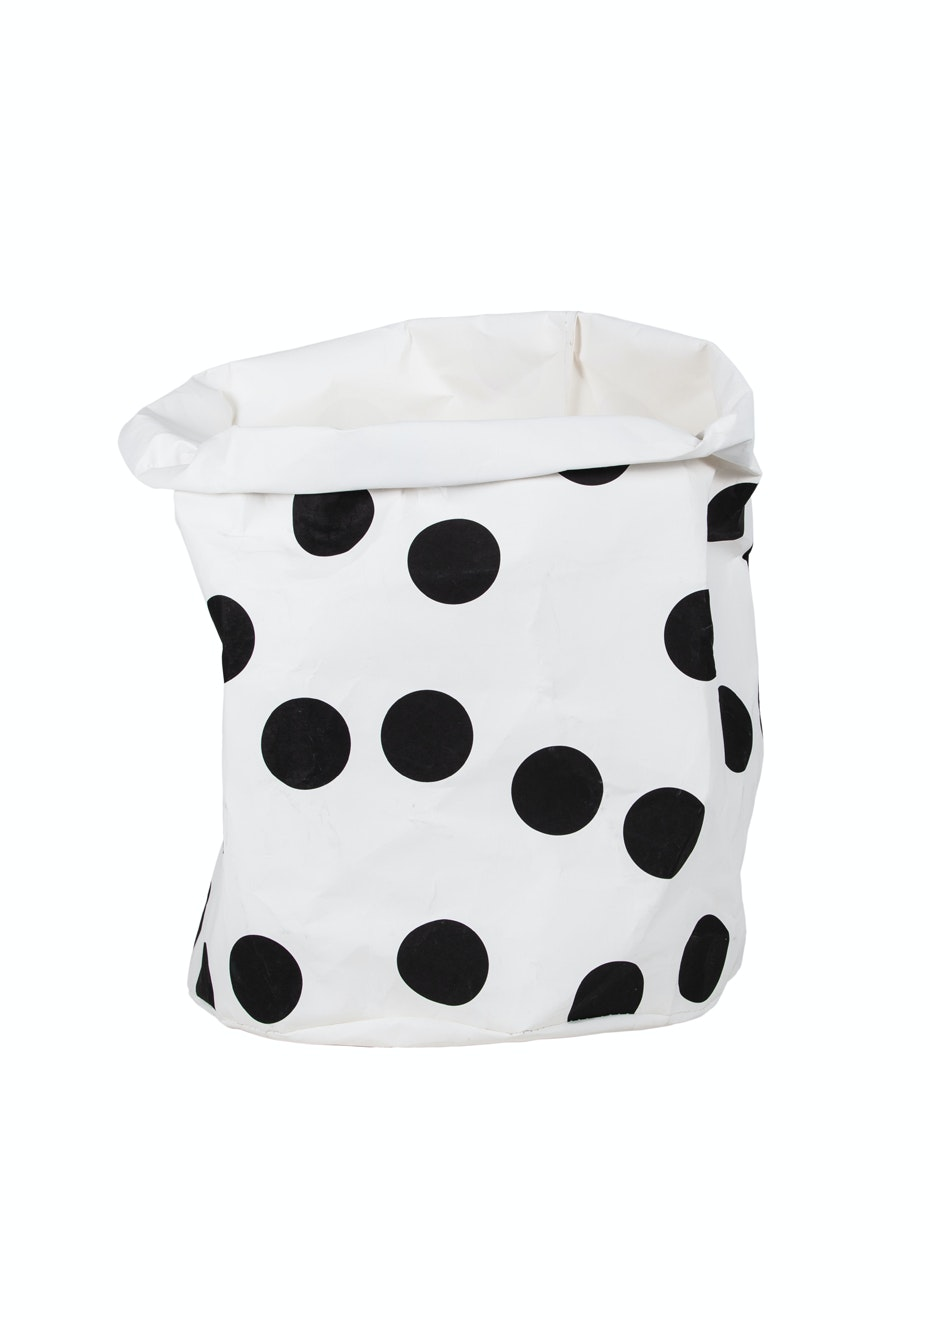 General Eclectic - Wash Paper Bag XL Black Spot